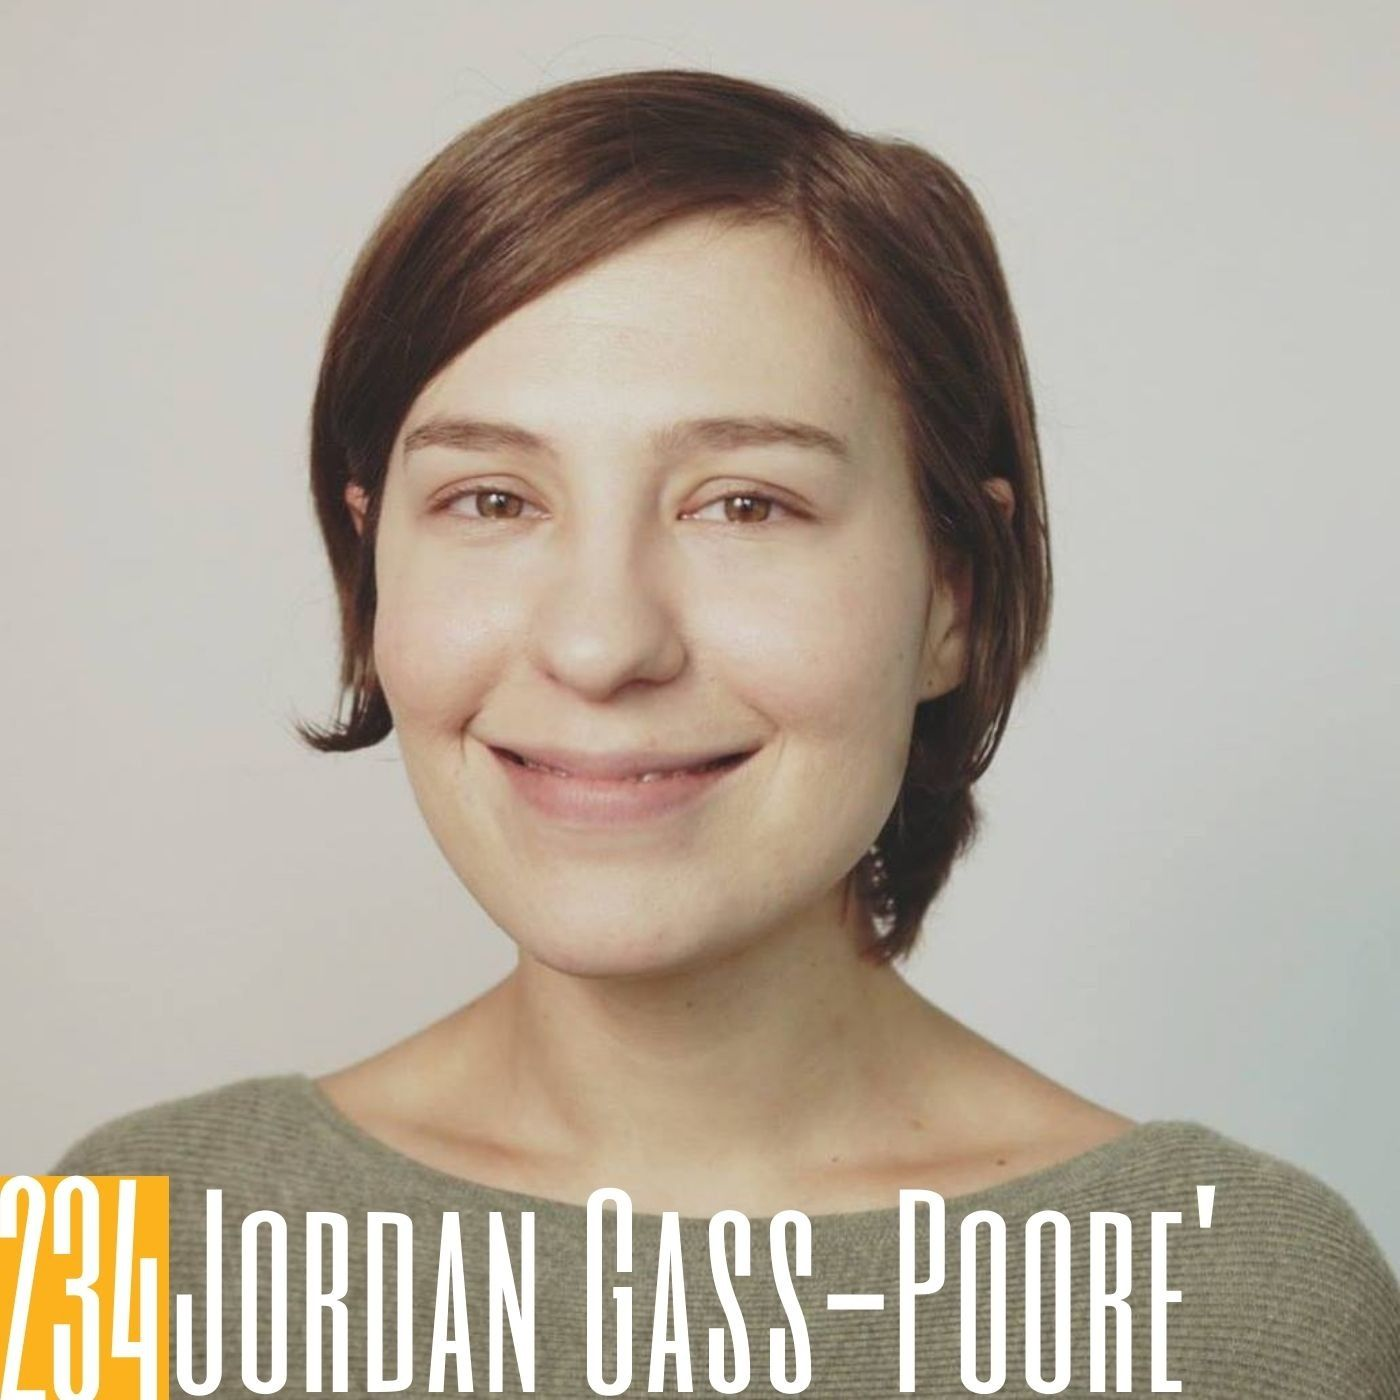 234 Jordan Gass-Poore' - Going Down the Rabbit Hole